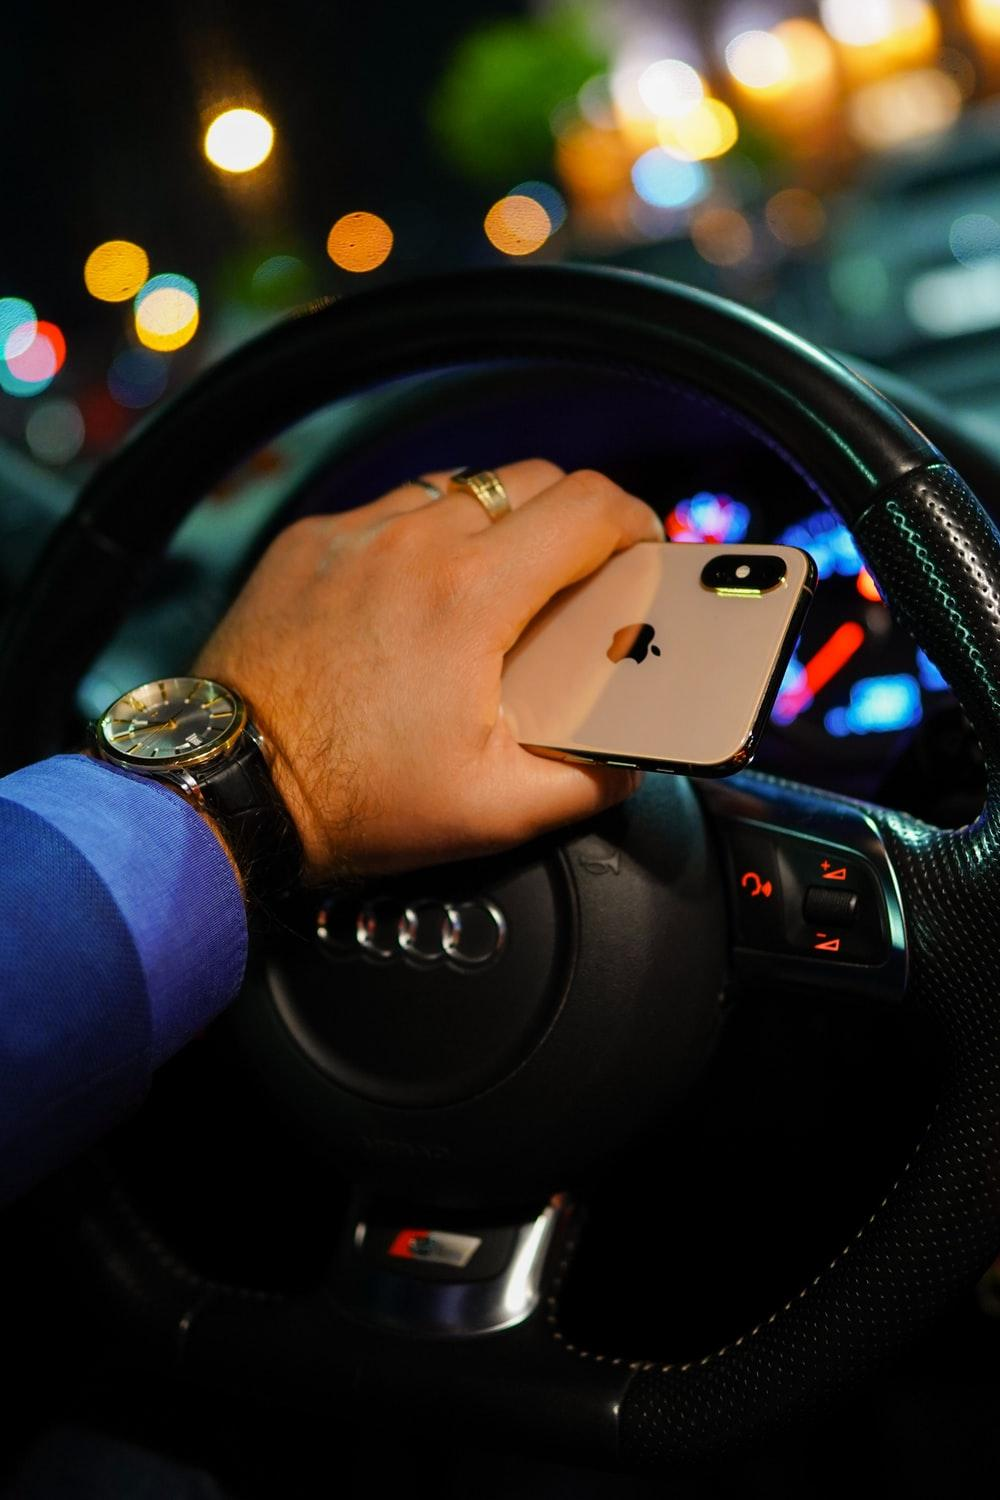 person holding gold iPhone Xs while driving black Audi vehicle